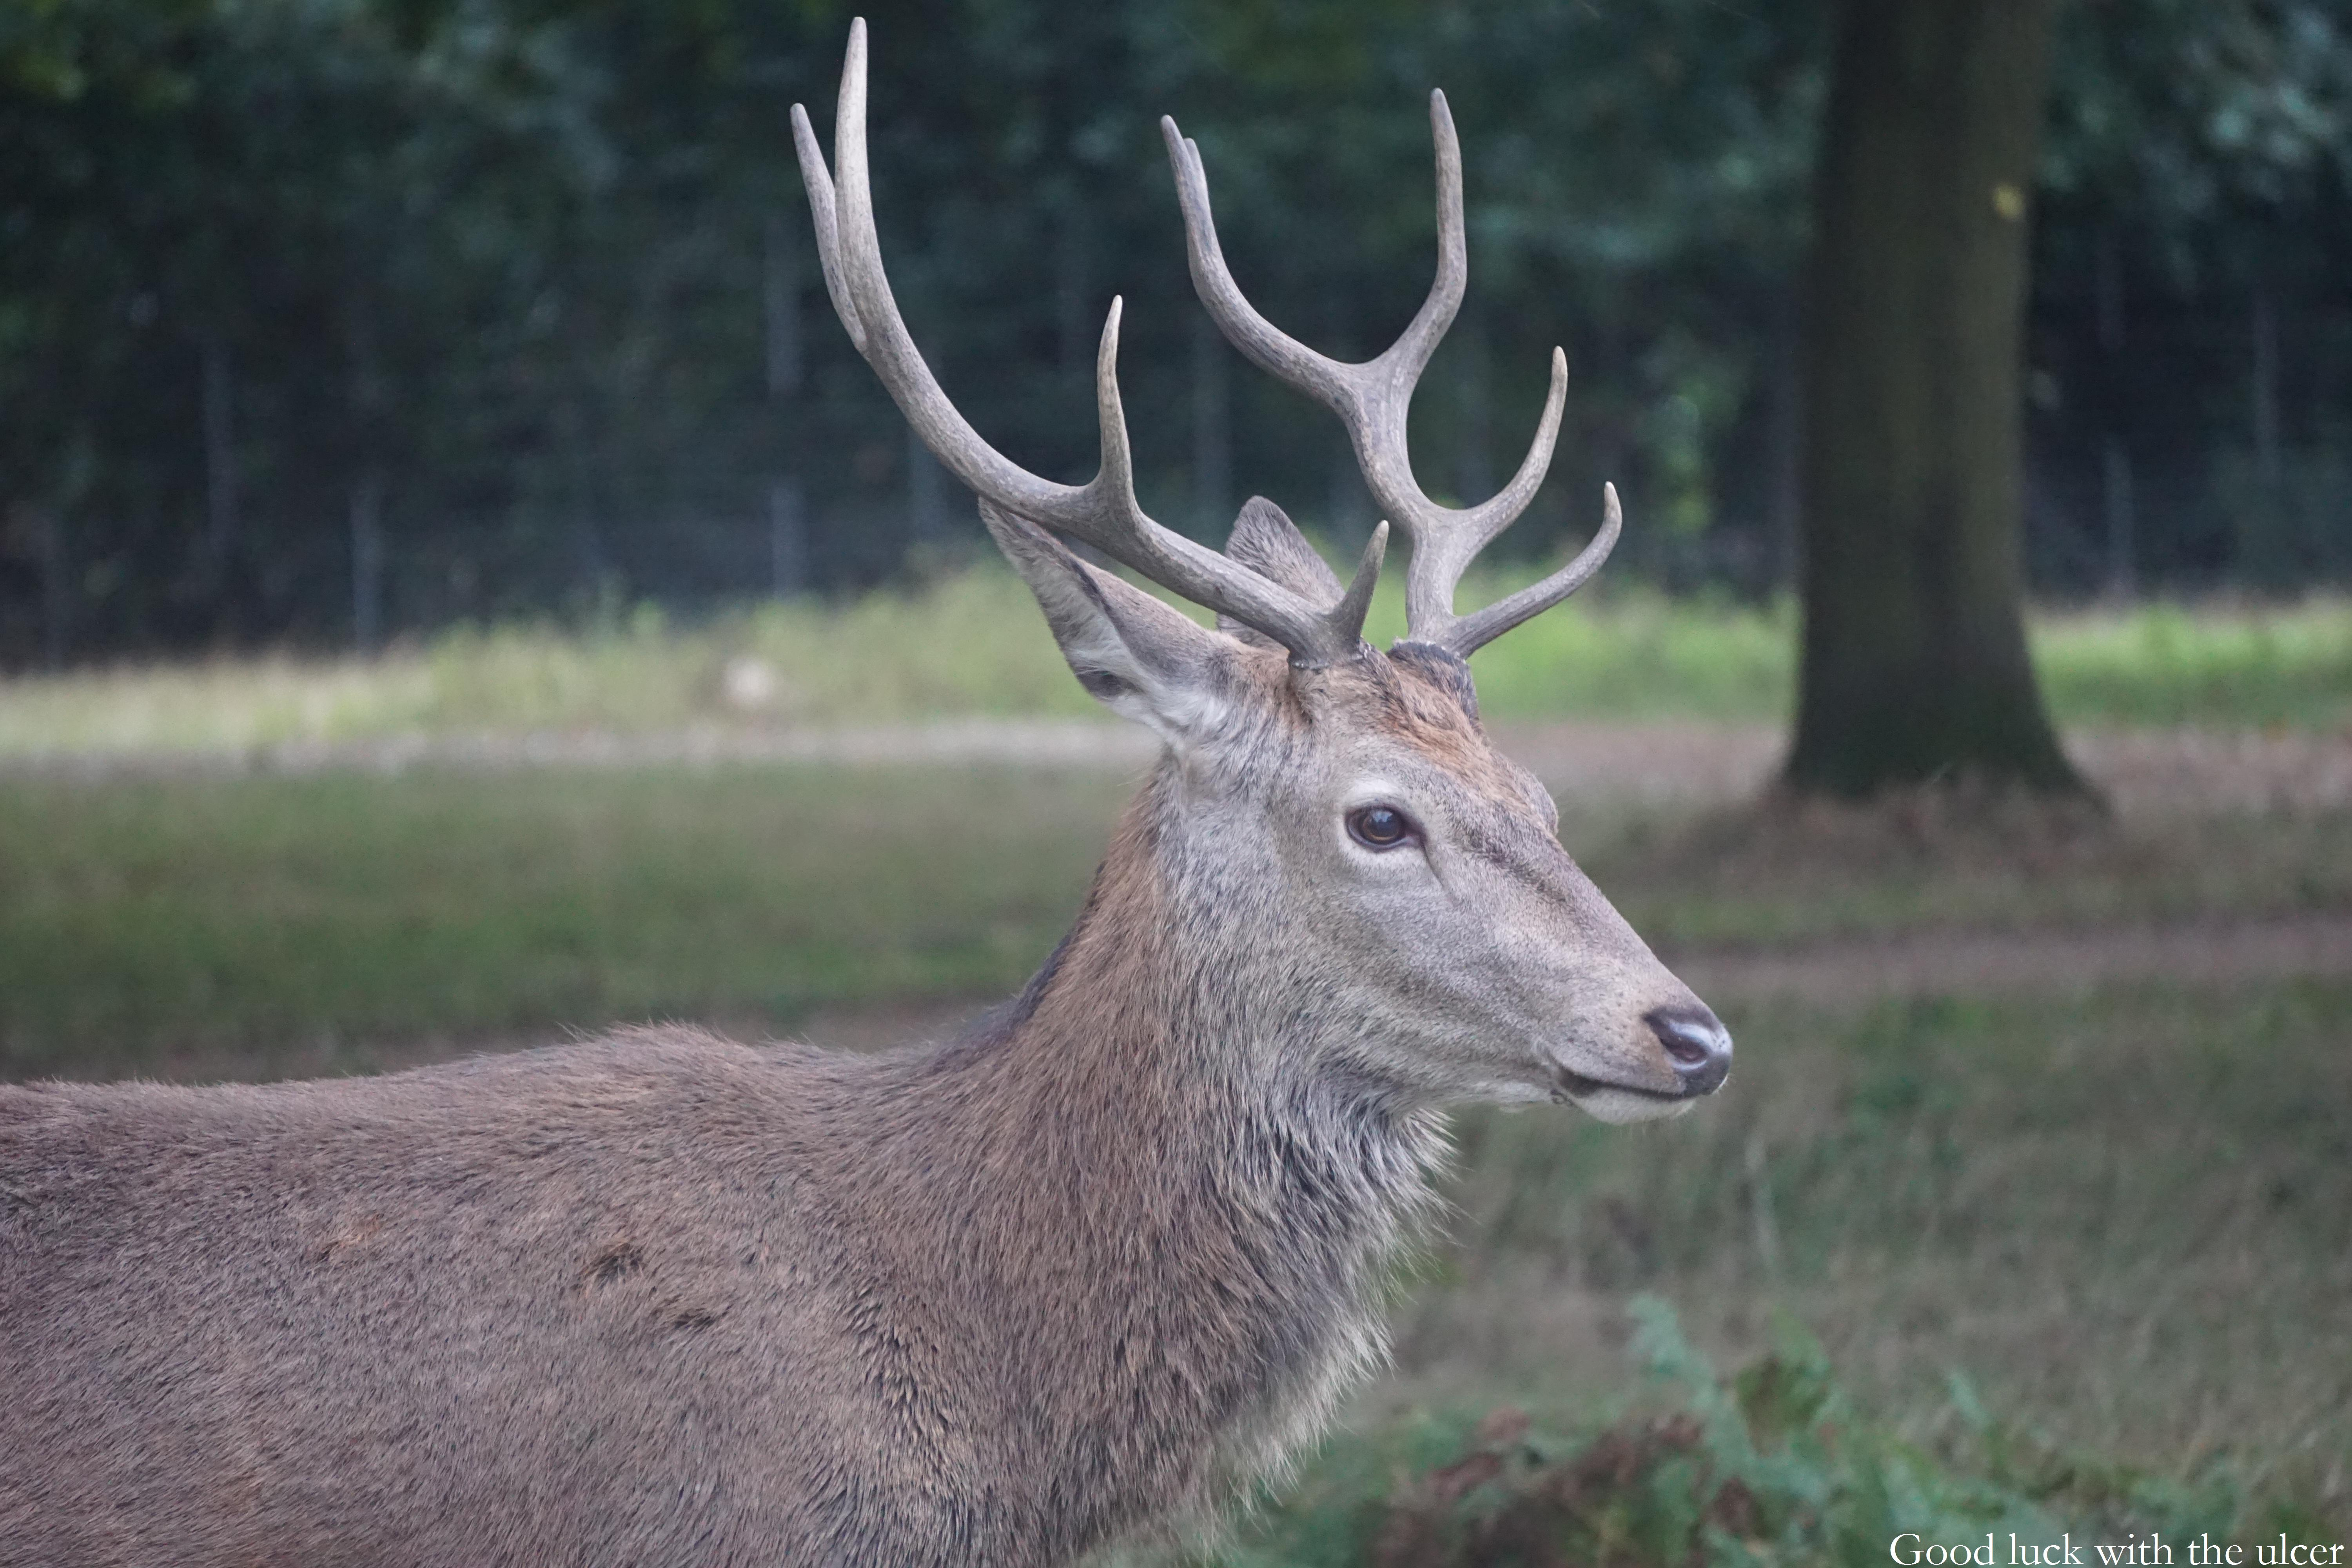 Wild deer and where to find them | Good luck with the ulcer